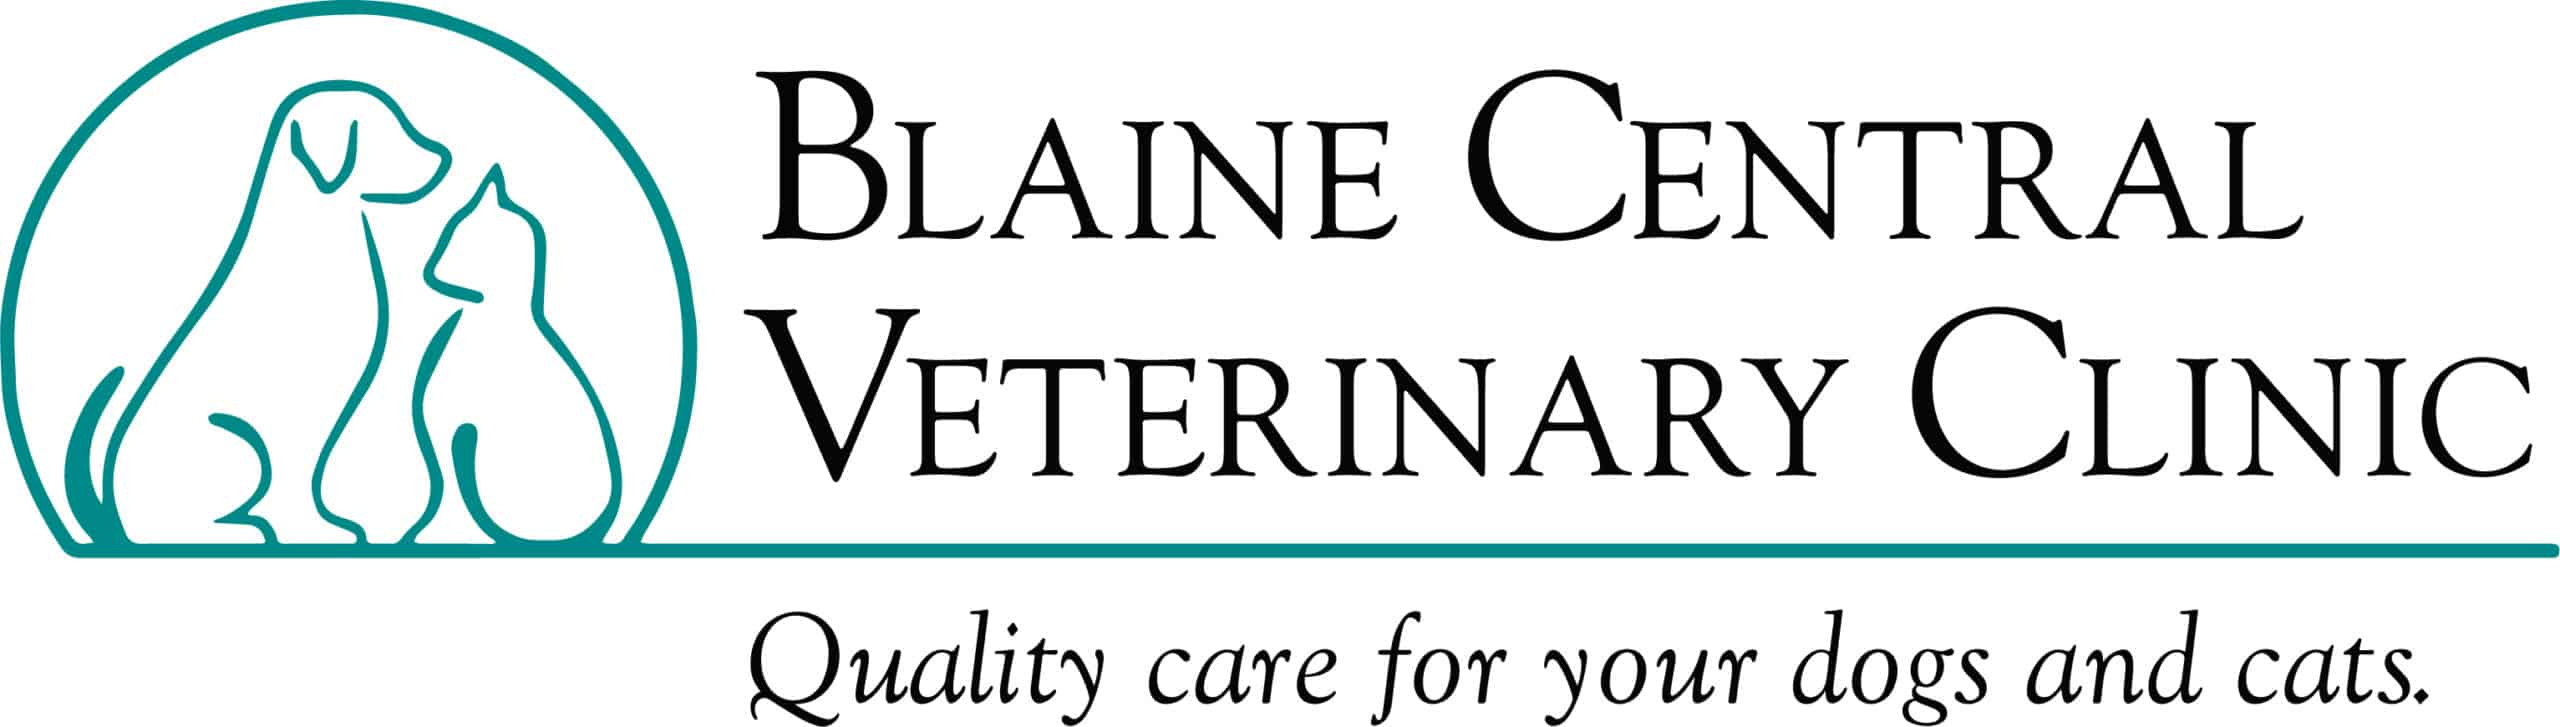 Blaine Central Veterinary Clinic